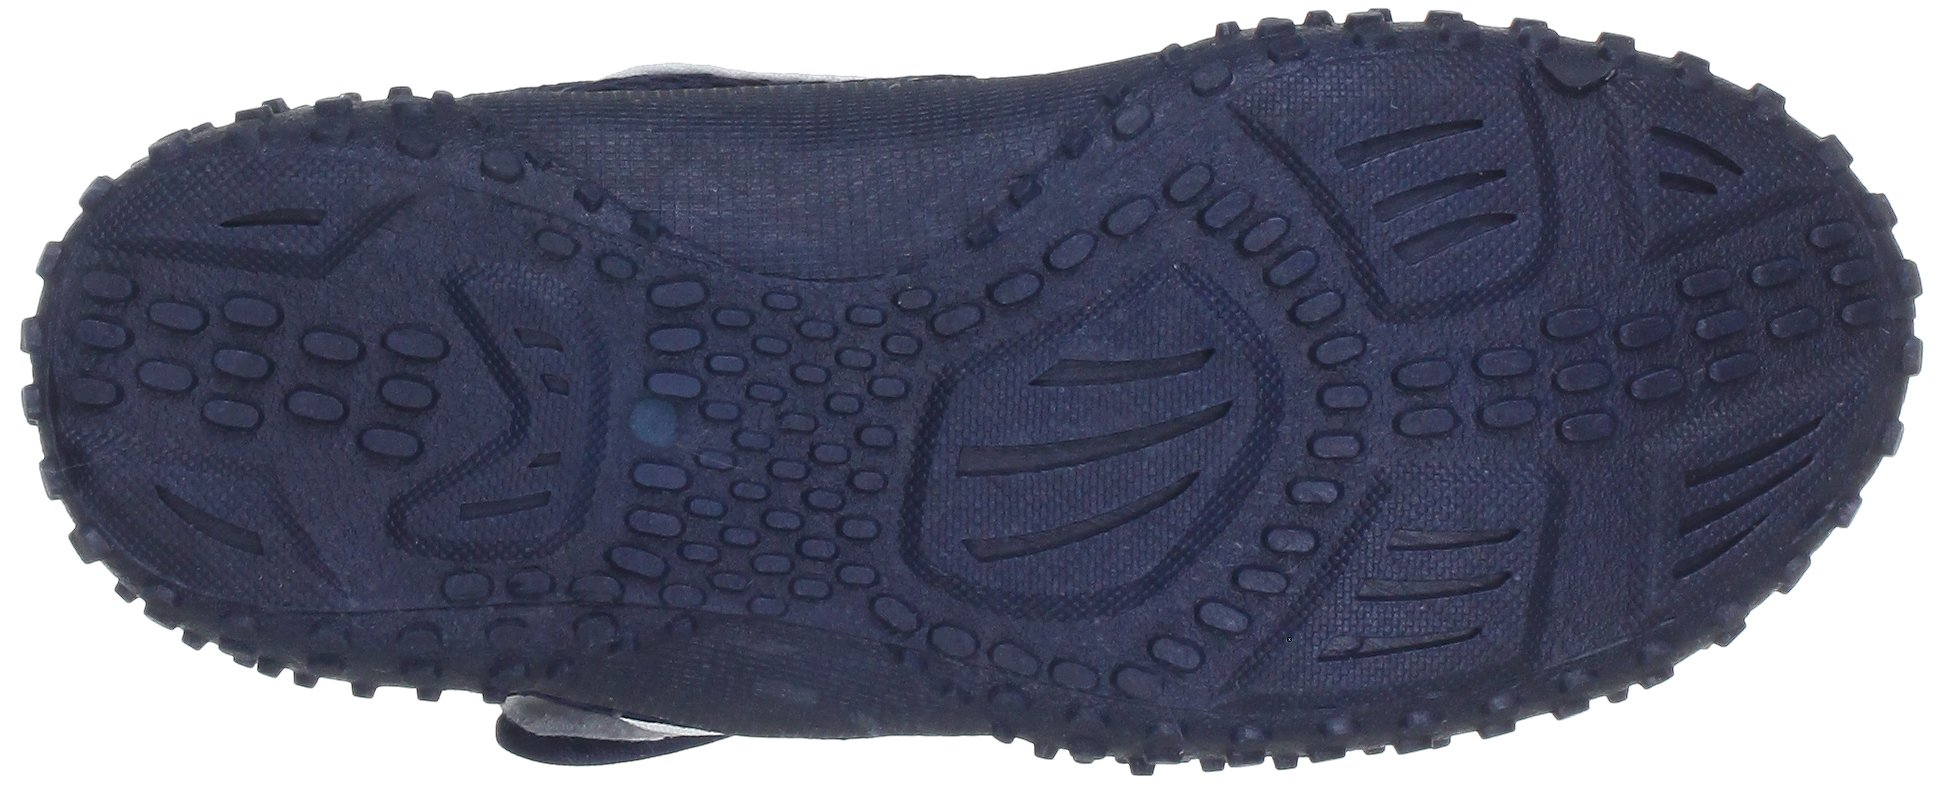 Playshoes Children's Aqua Beach Water Shoes (8.5 M US Toddler, Navy) by Playshoes (Image #4)